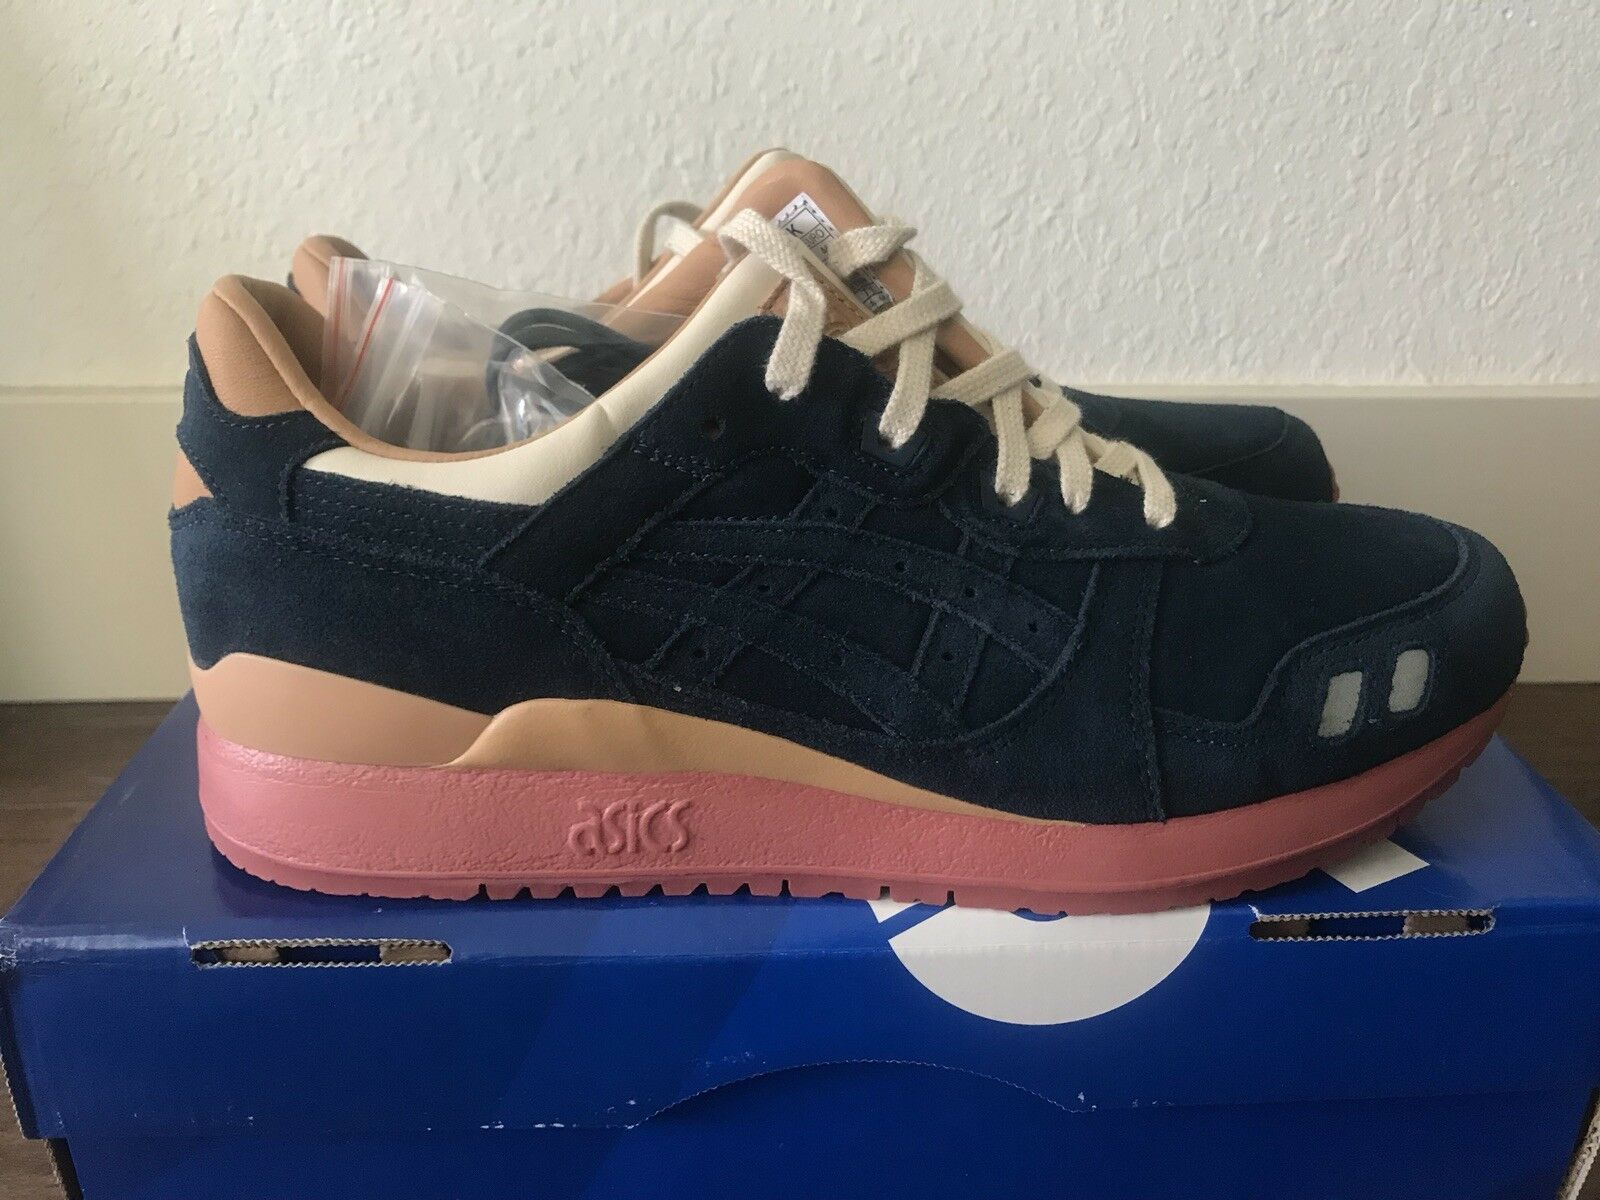 "Asics X Packer / J.Crew ""Navy Buck"" BNIB DS 10 Gel Lyte III GLIII"